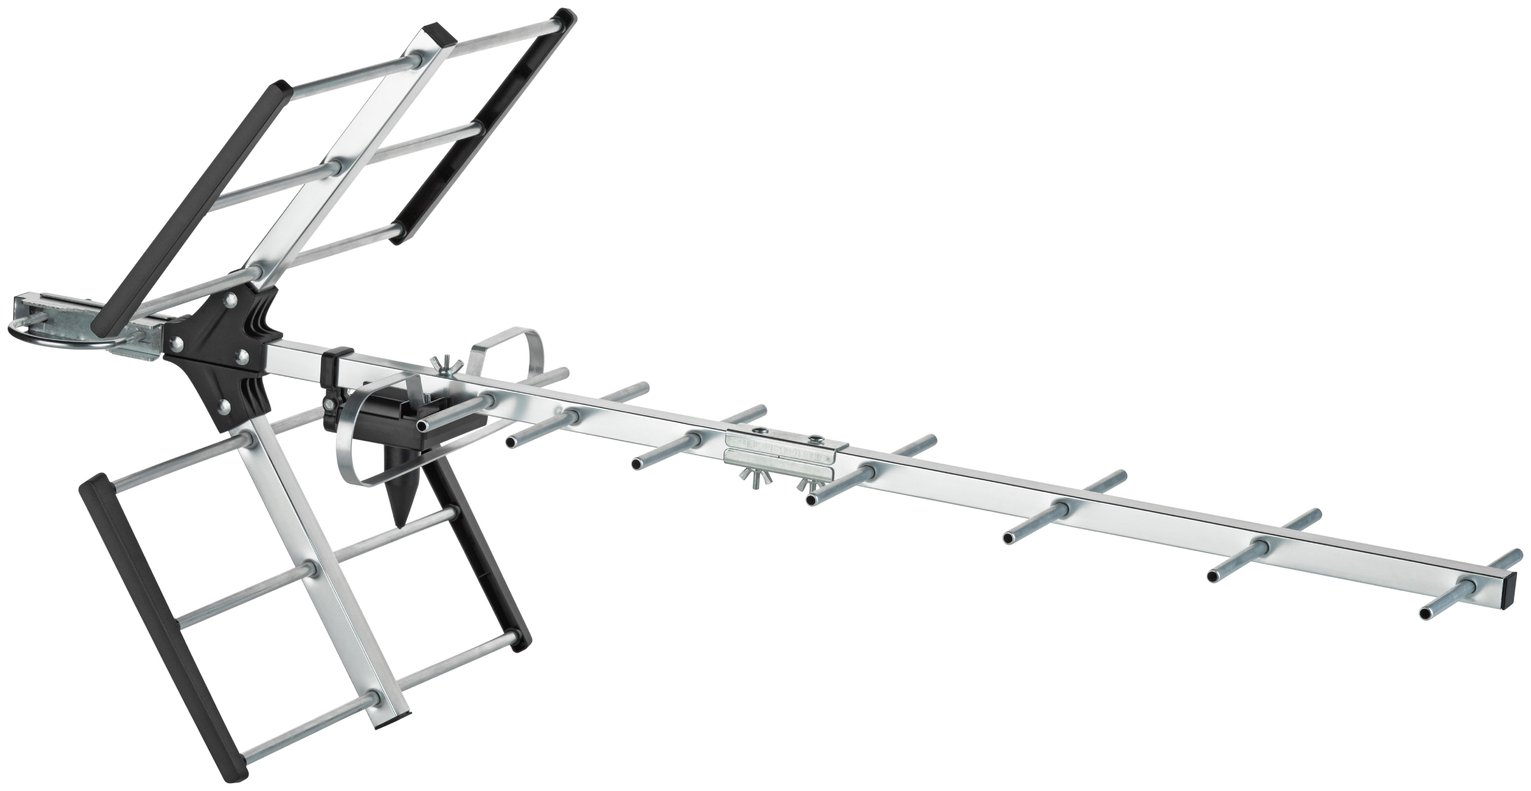 One For All SV9354 Outdoor TV Aerial